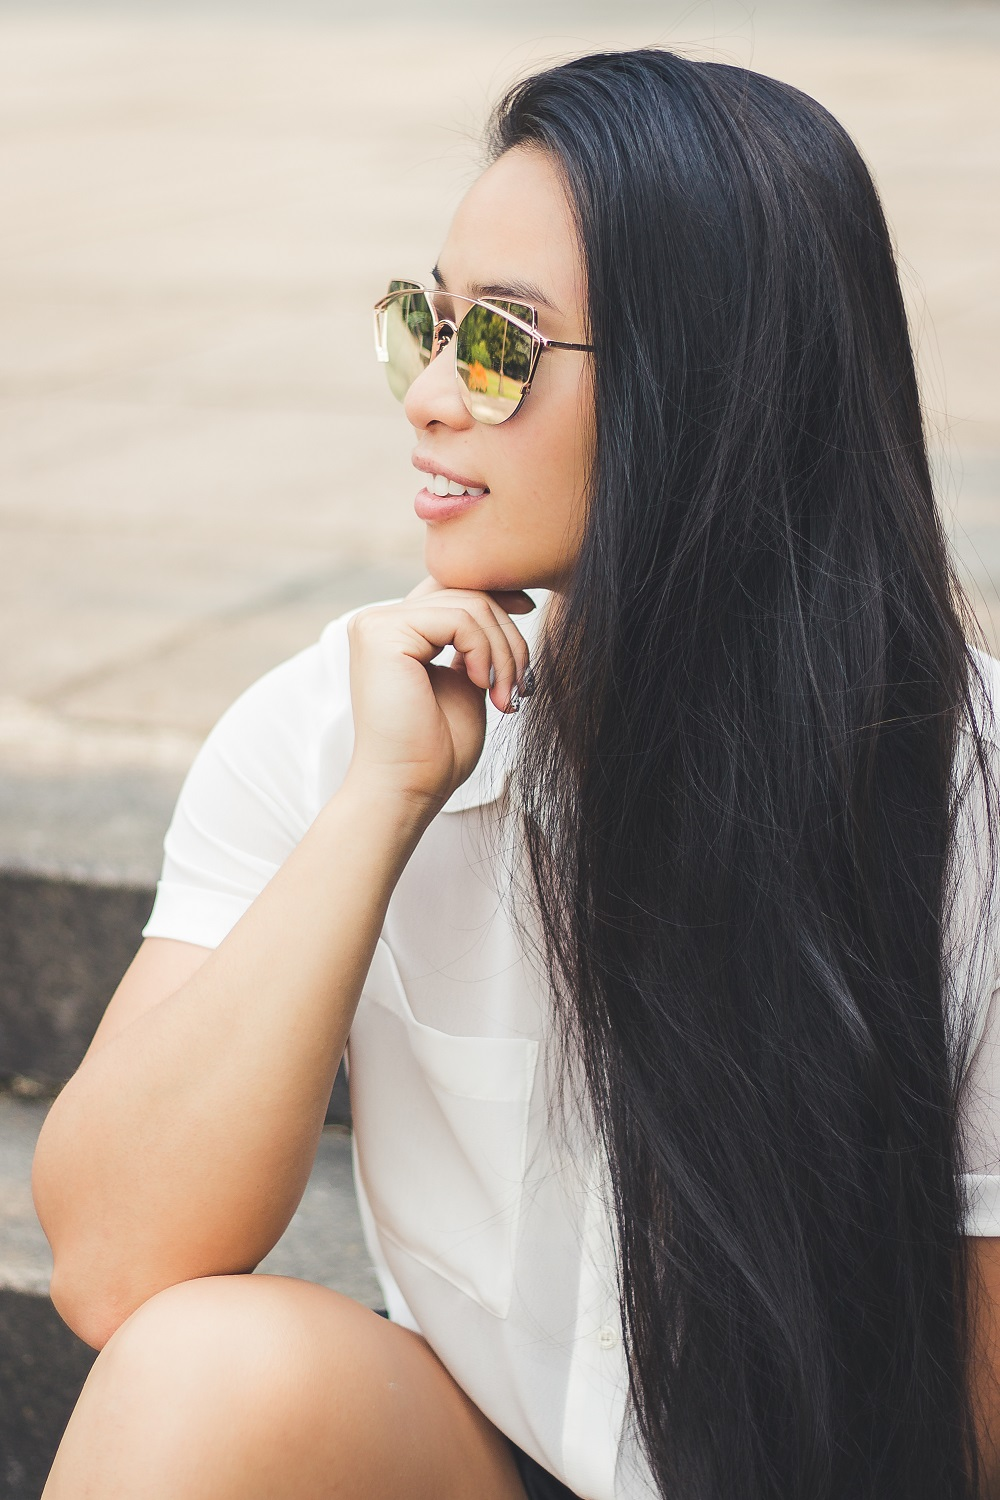 long hair portrait ootd blogger